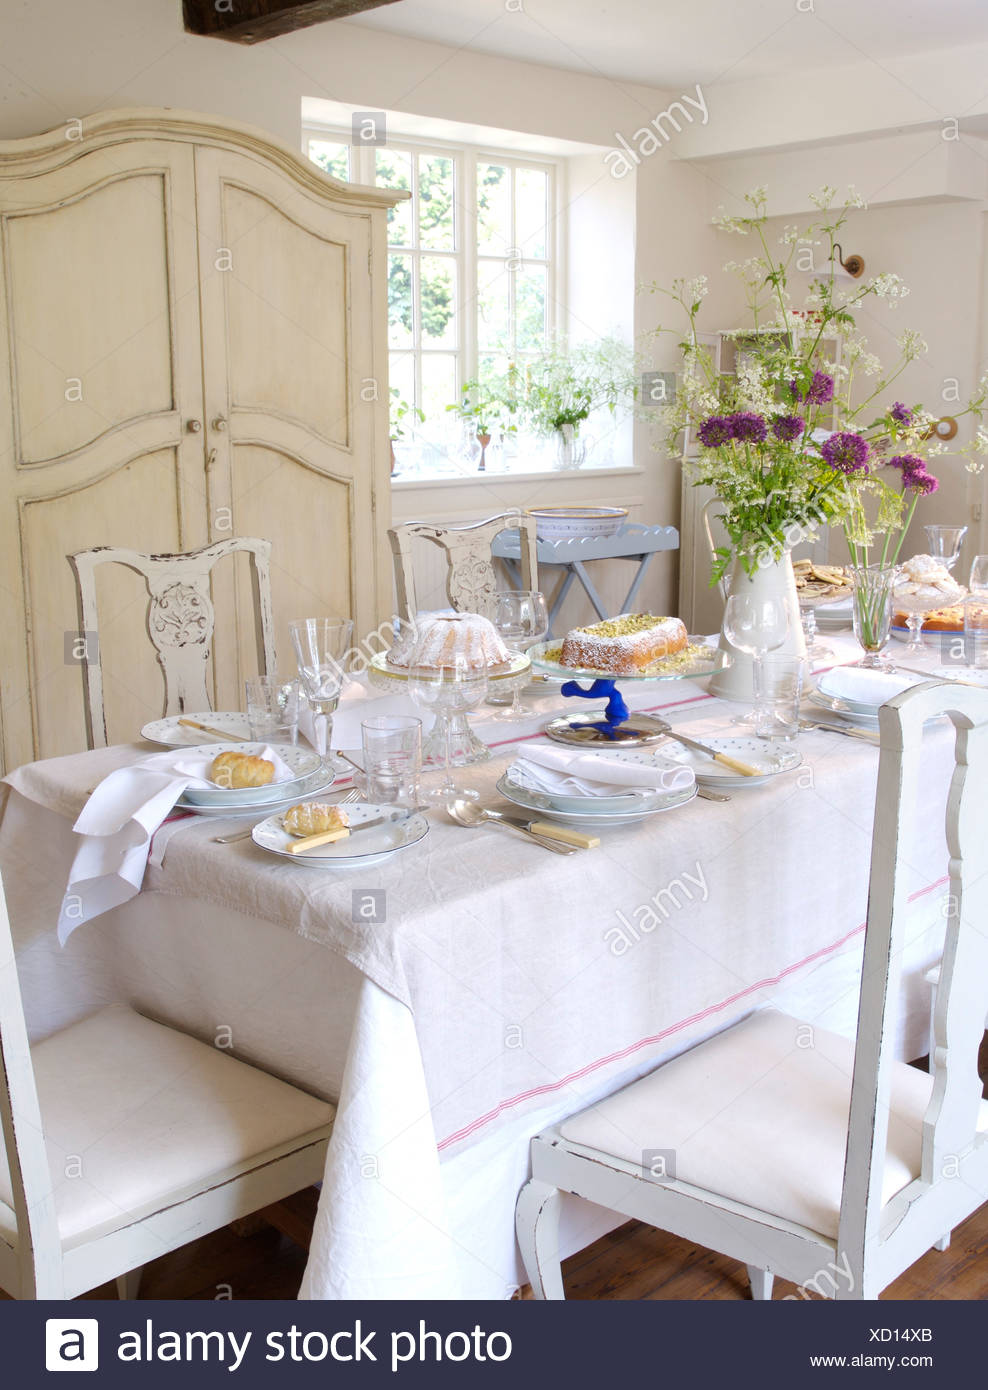 Stupendous White Linen Cloth On Table Set For Lunch In White Country Andrewgaddart Wooden Chair Designs For Living Room Andrewgaddartcom